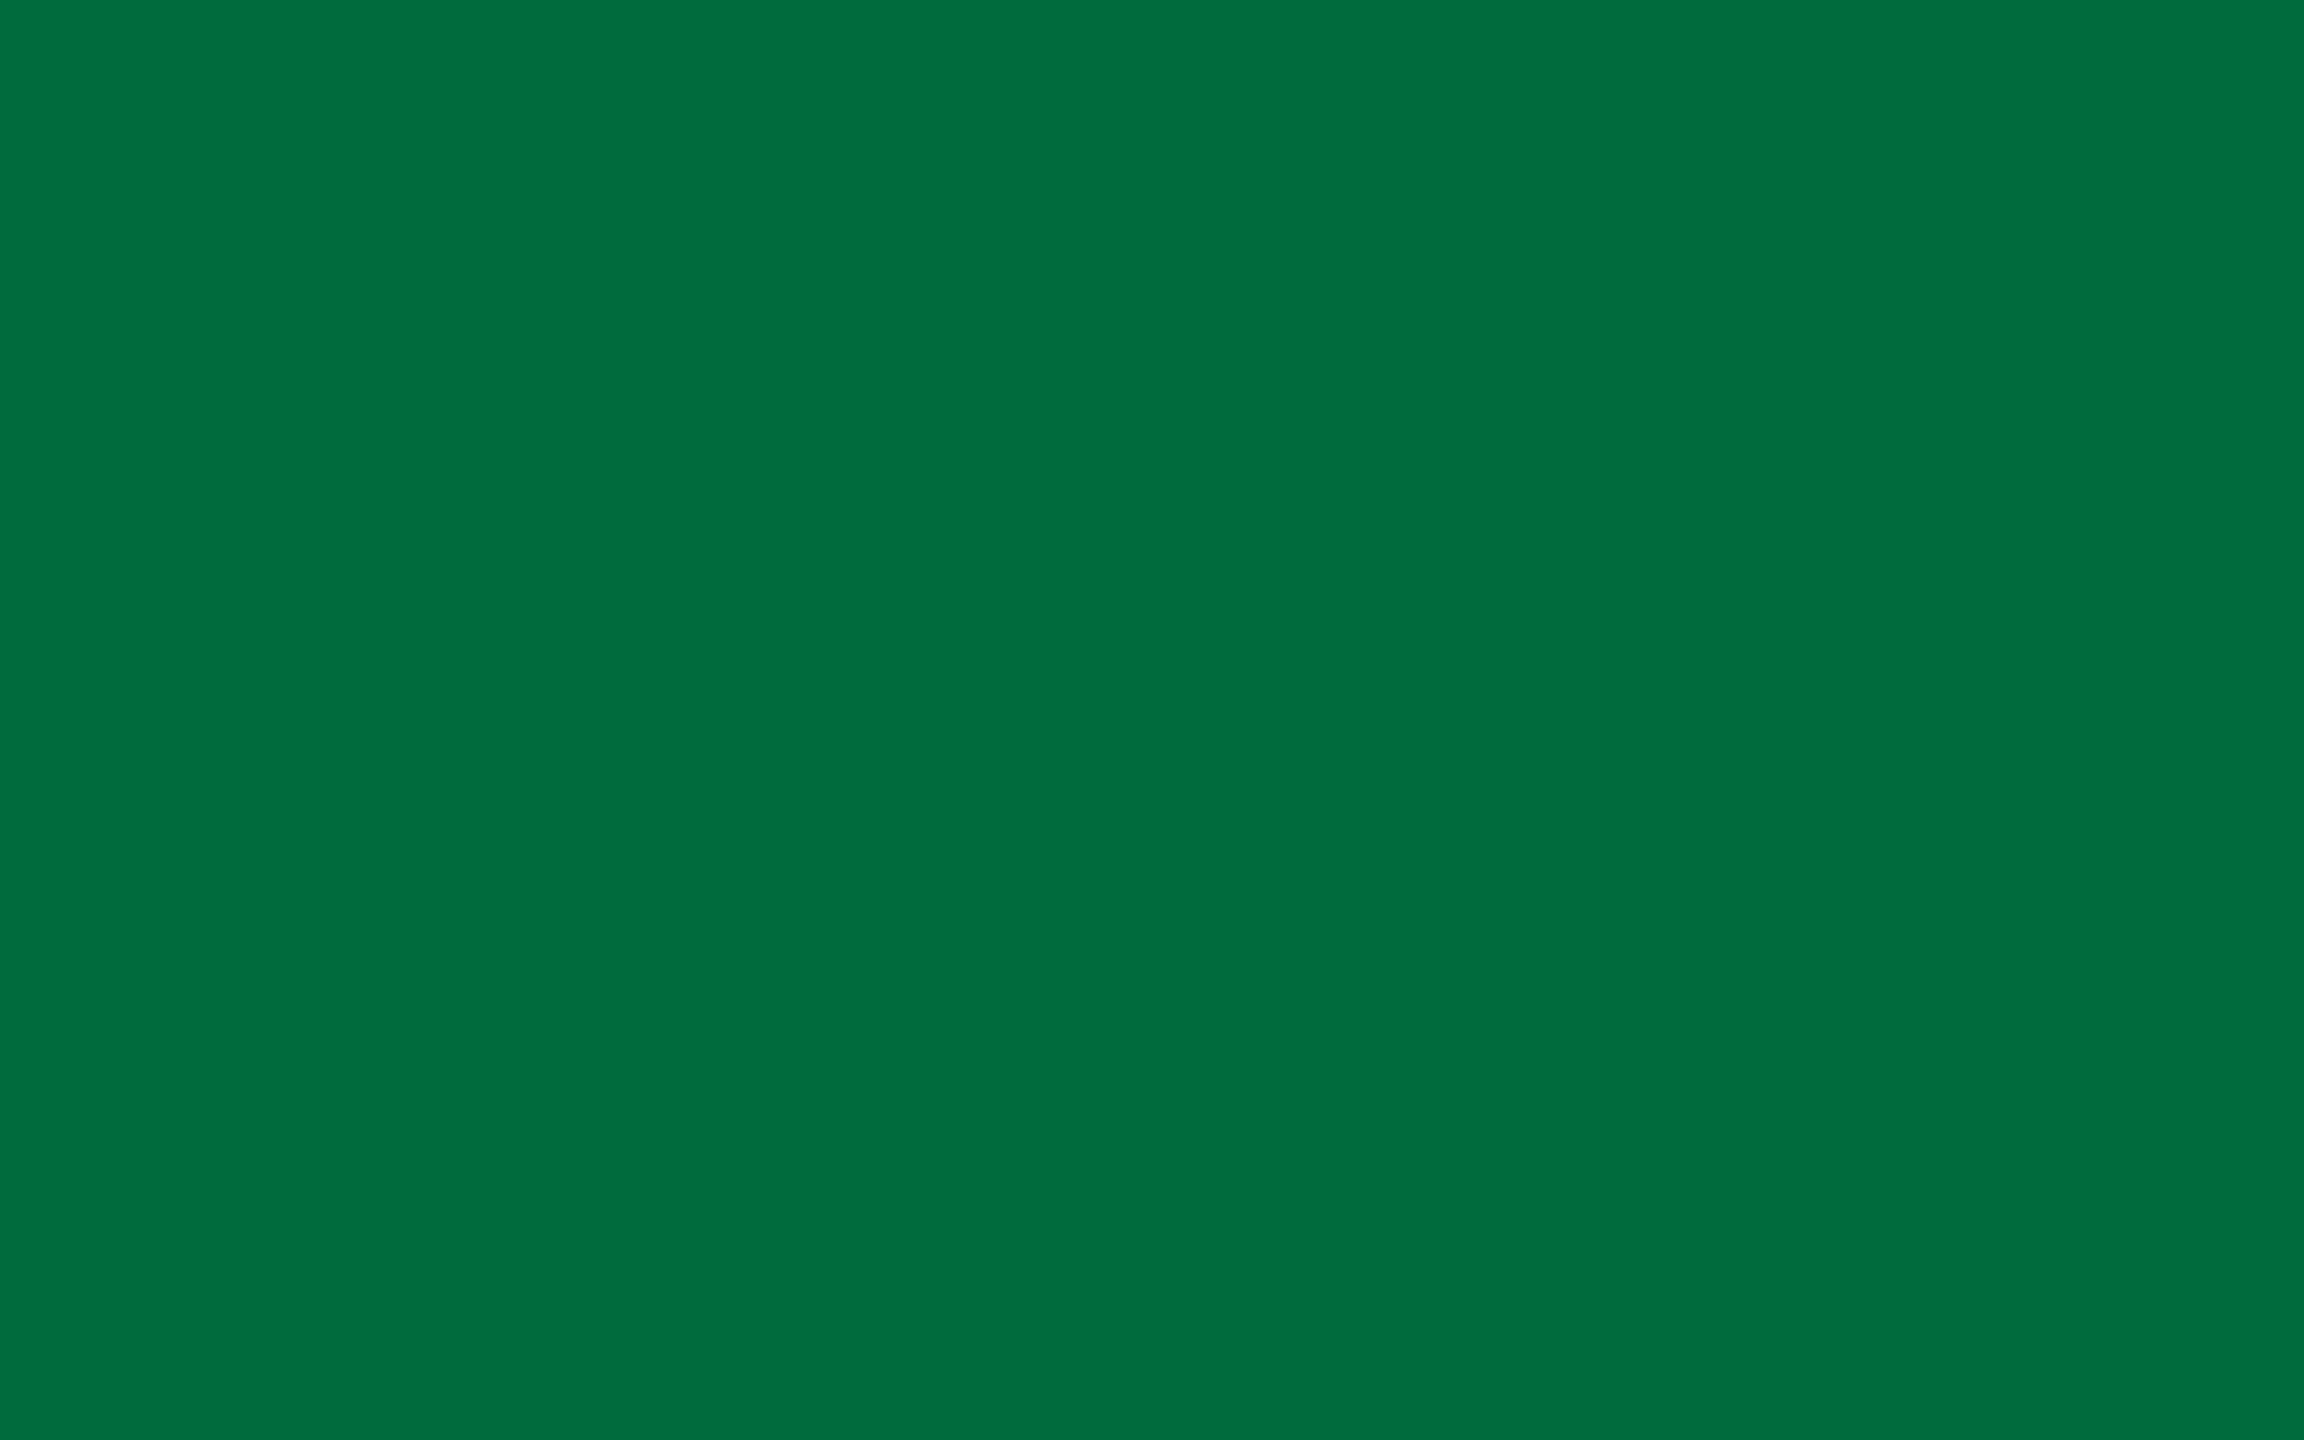 2304x1440 Cadmium Green Solid Color Background